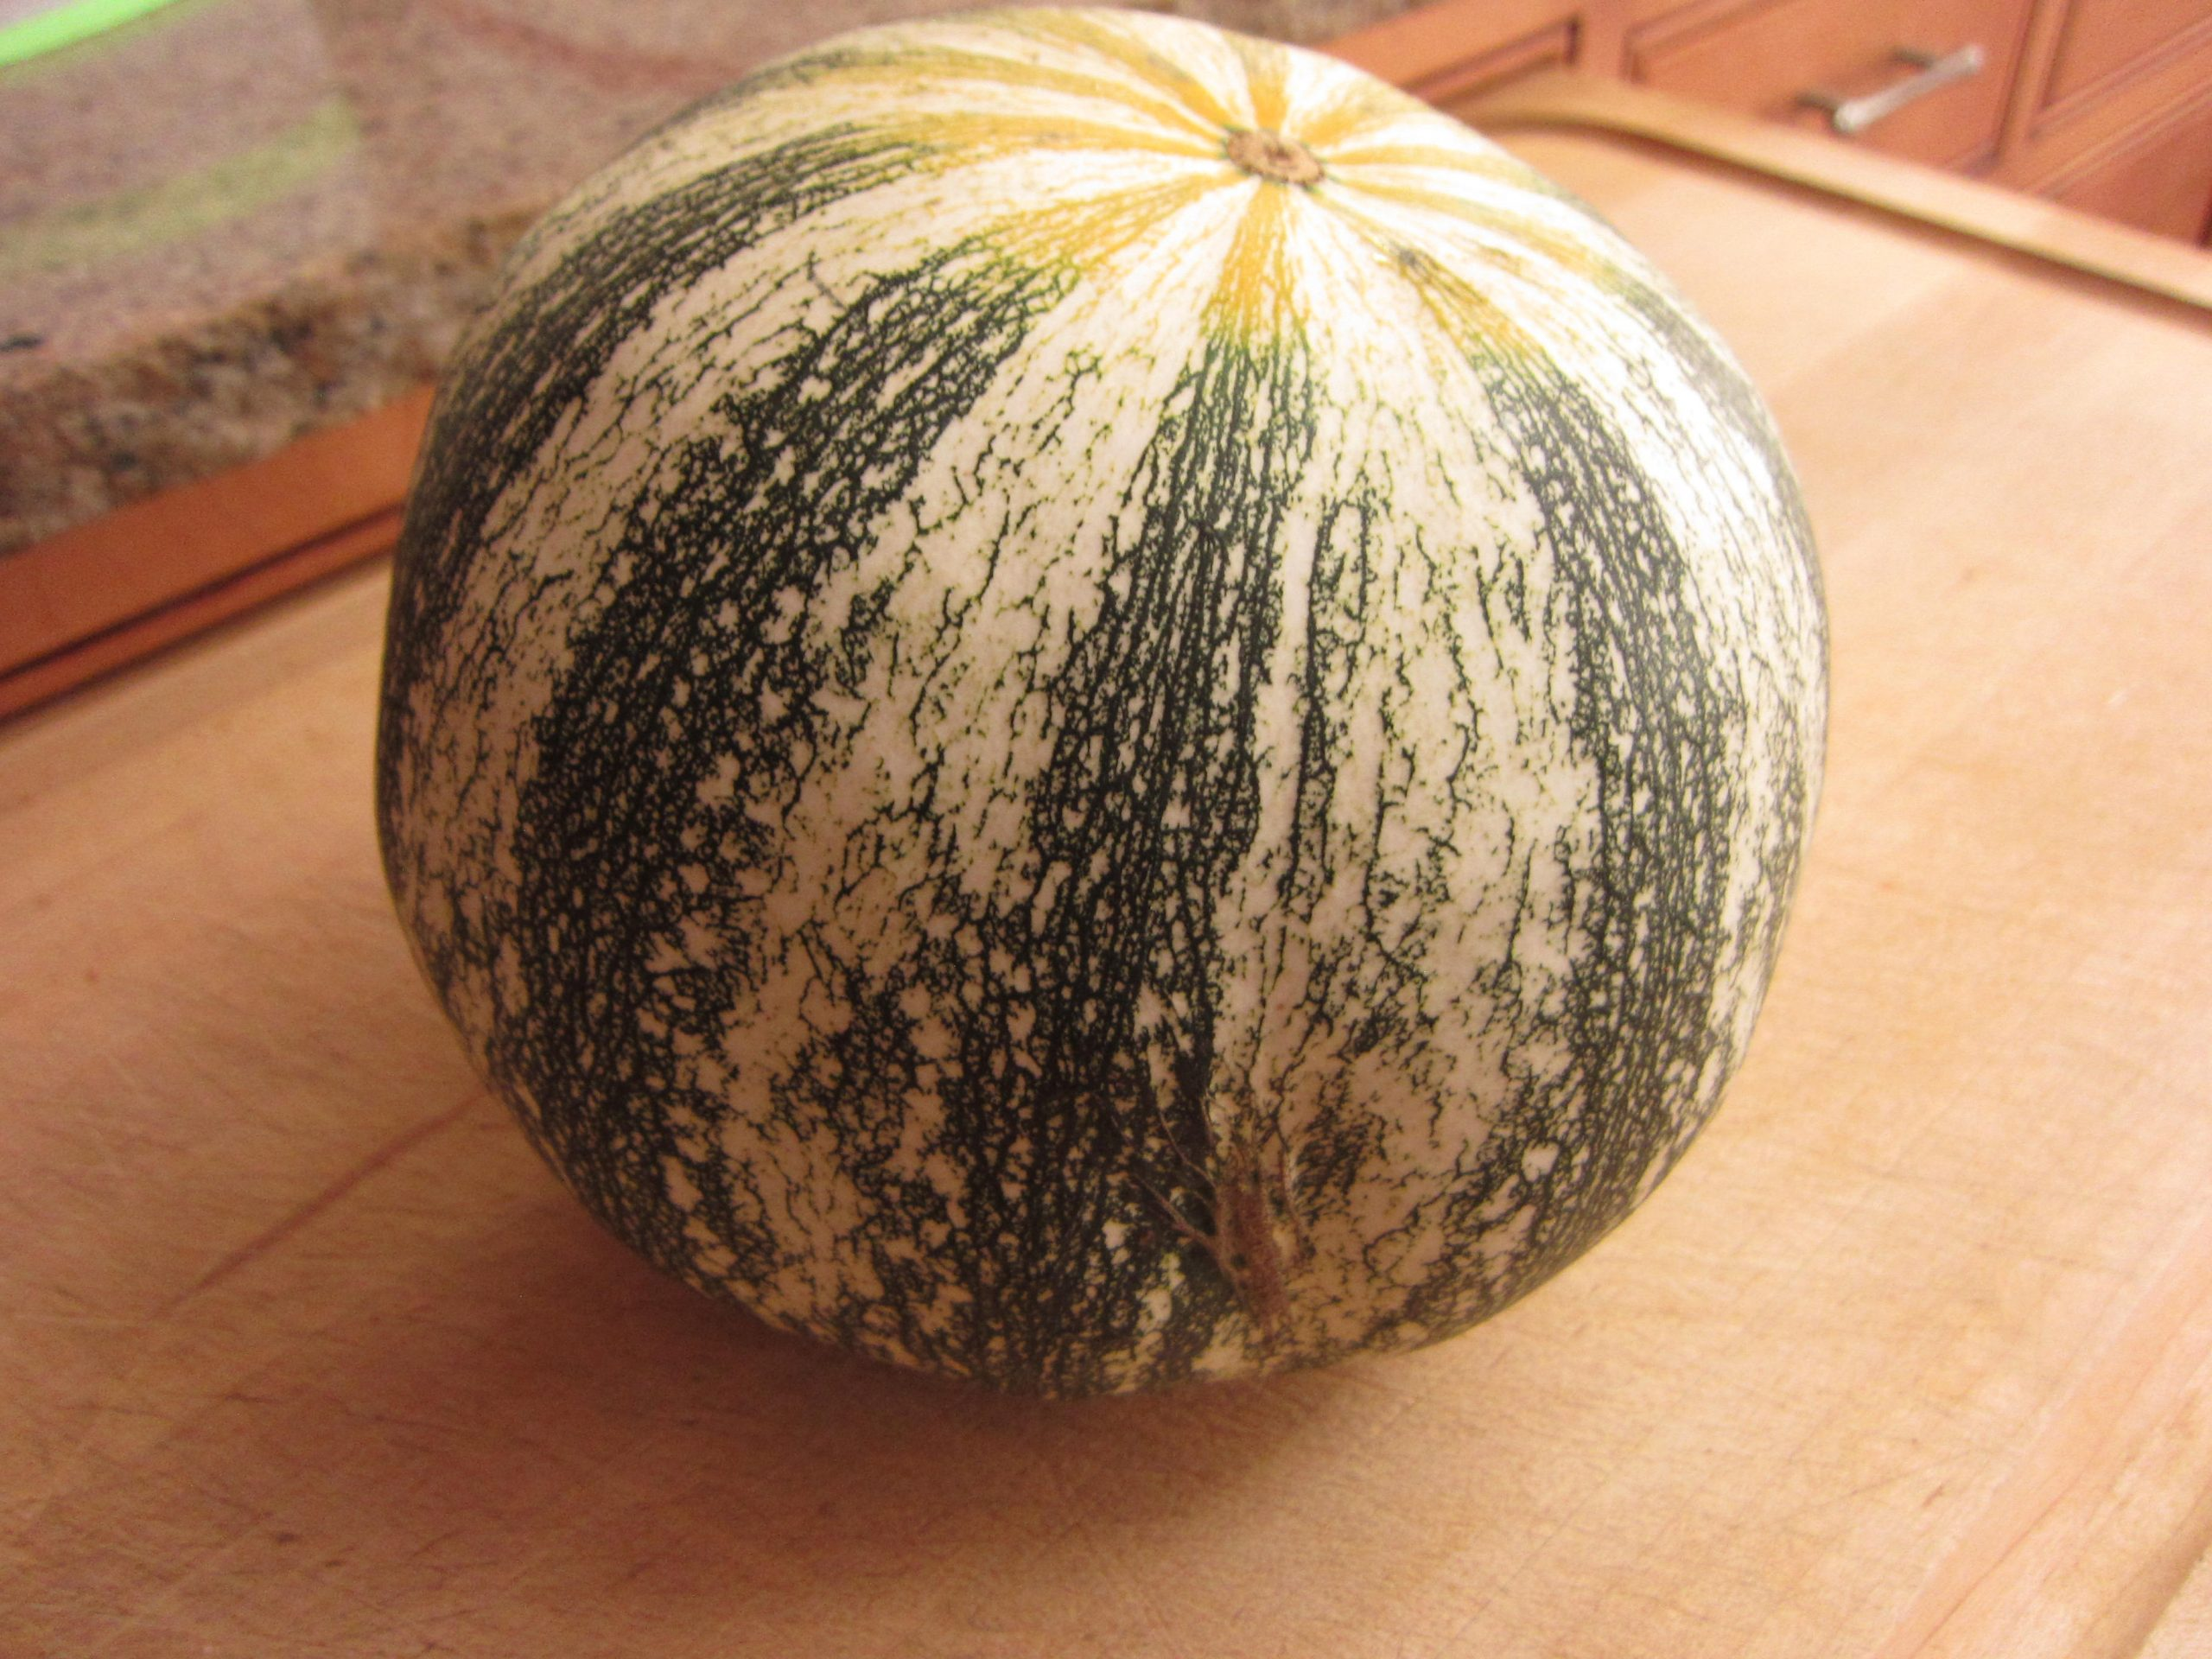 You are currently viewing Harvesting Silver Edge Pumpkin Seeds